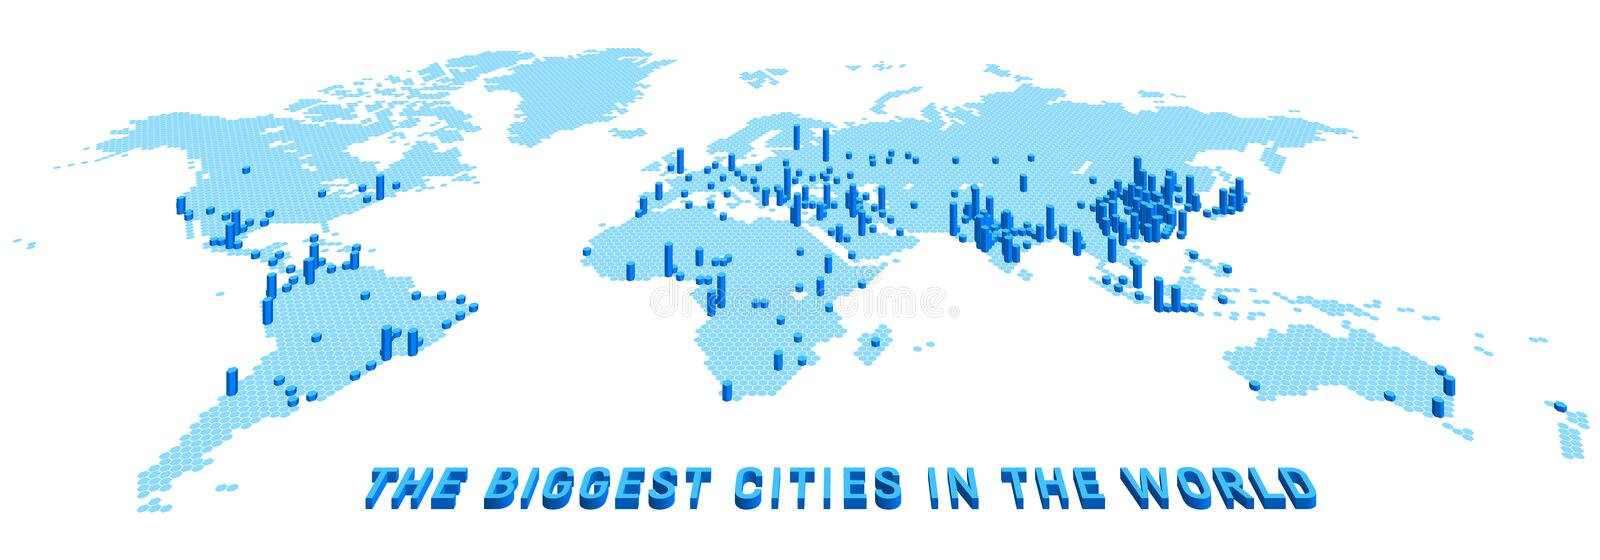 Vector world map stylized using hexagons with the biggest cities download vector world map stylized using hexagons with the biggest cities stock vector illustration of gumiabroncs